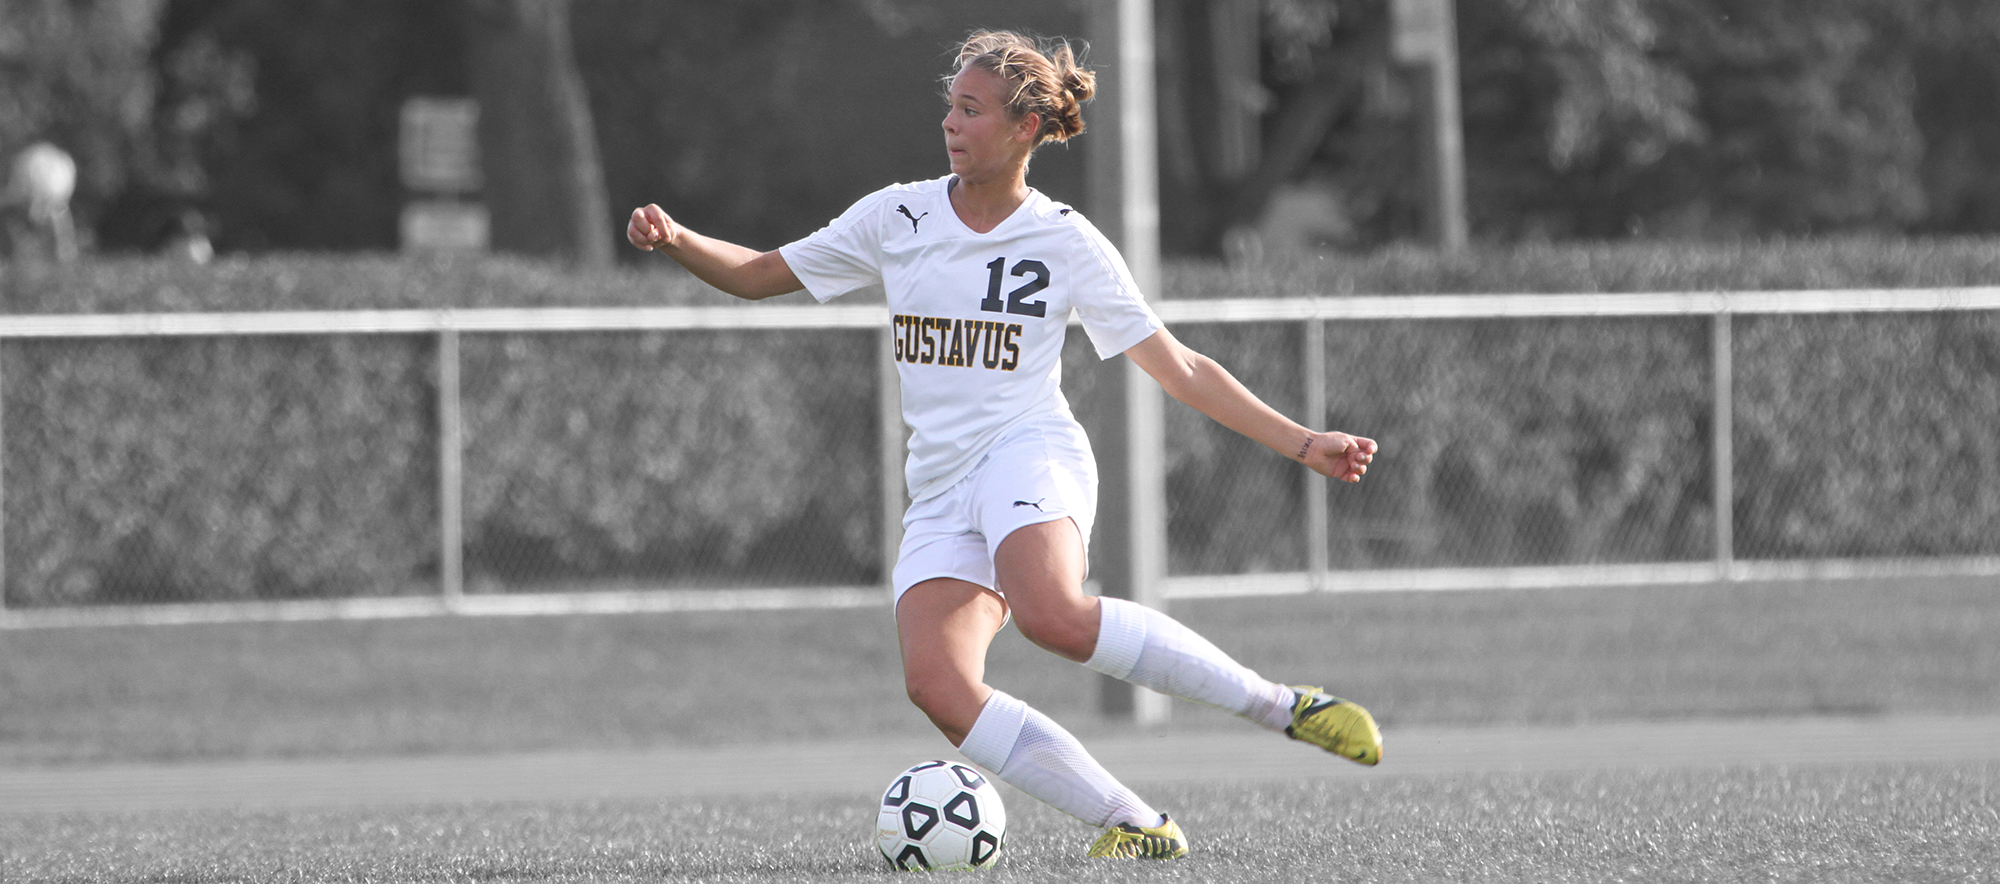 womens non conference soccer action - HD2000×884